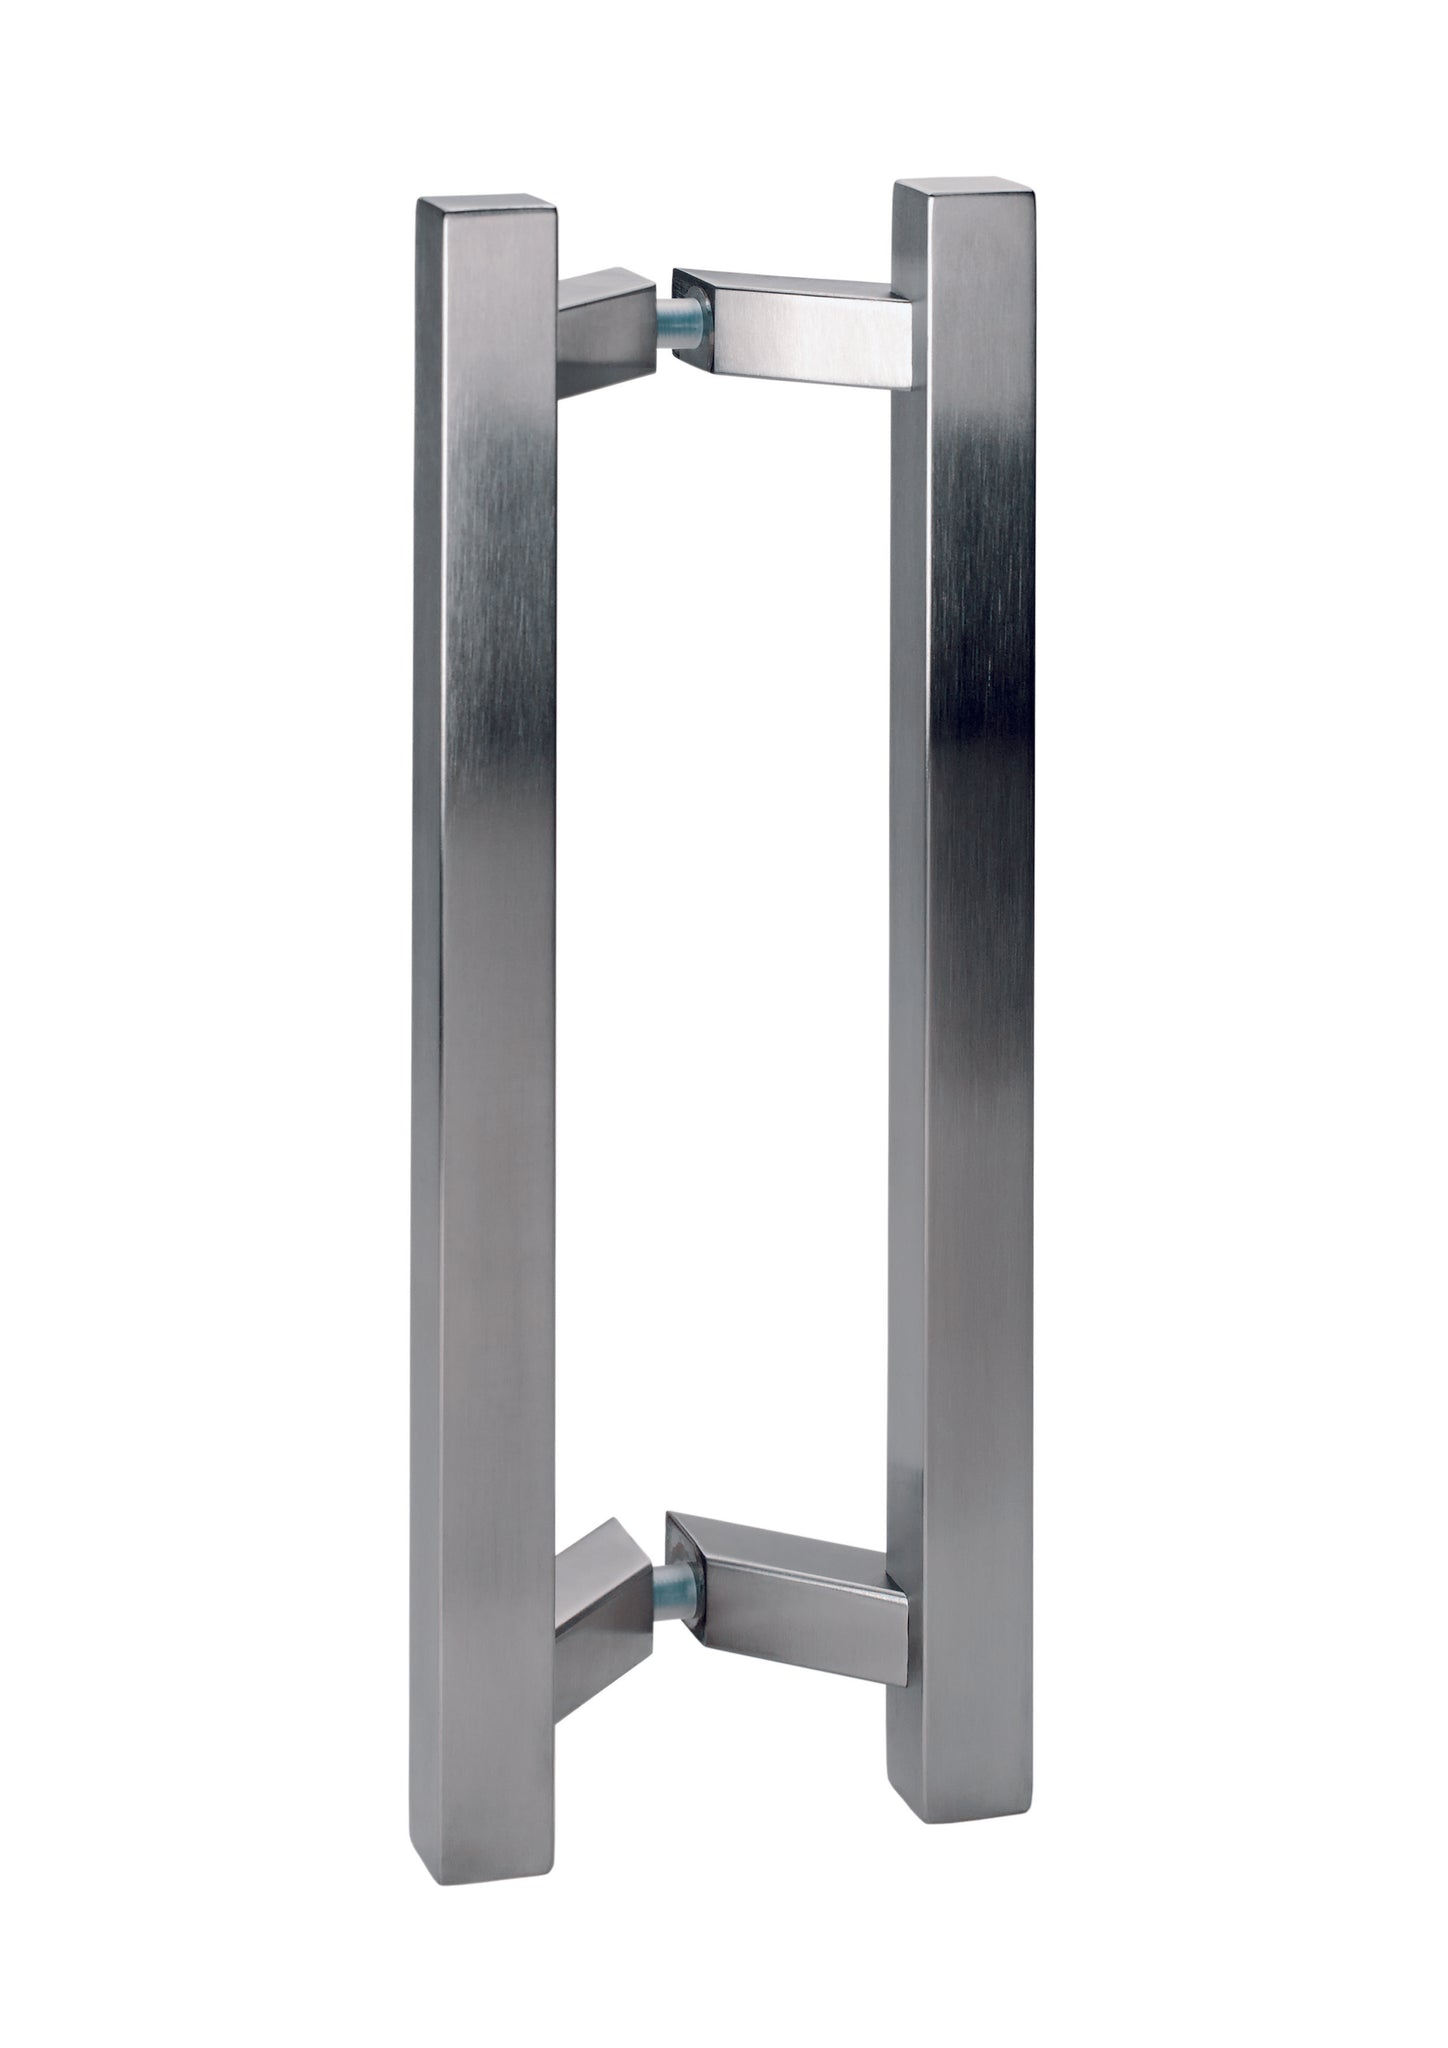 Stainless Steel Square Mitred T Handle